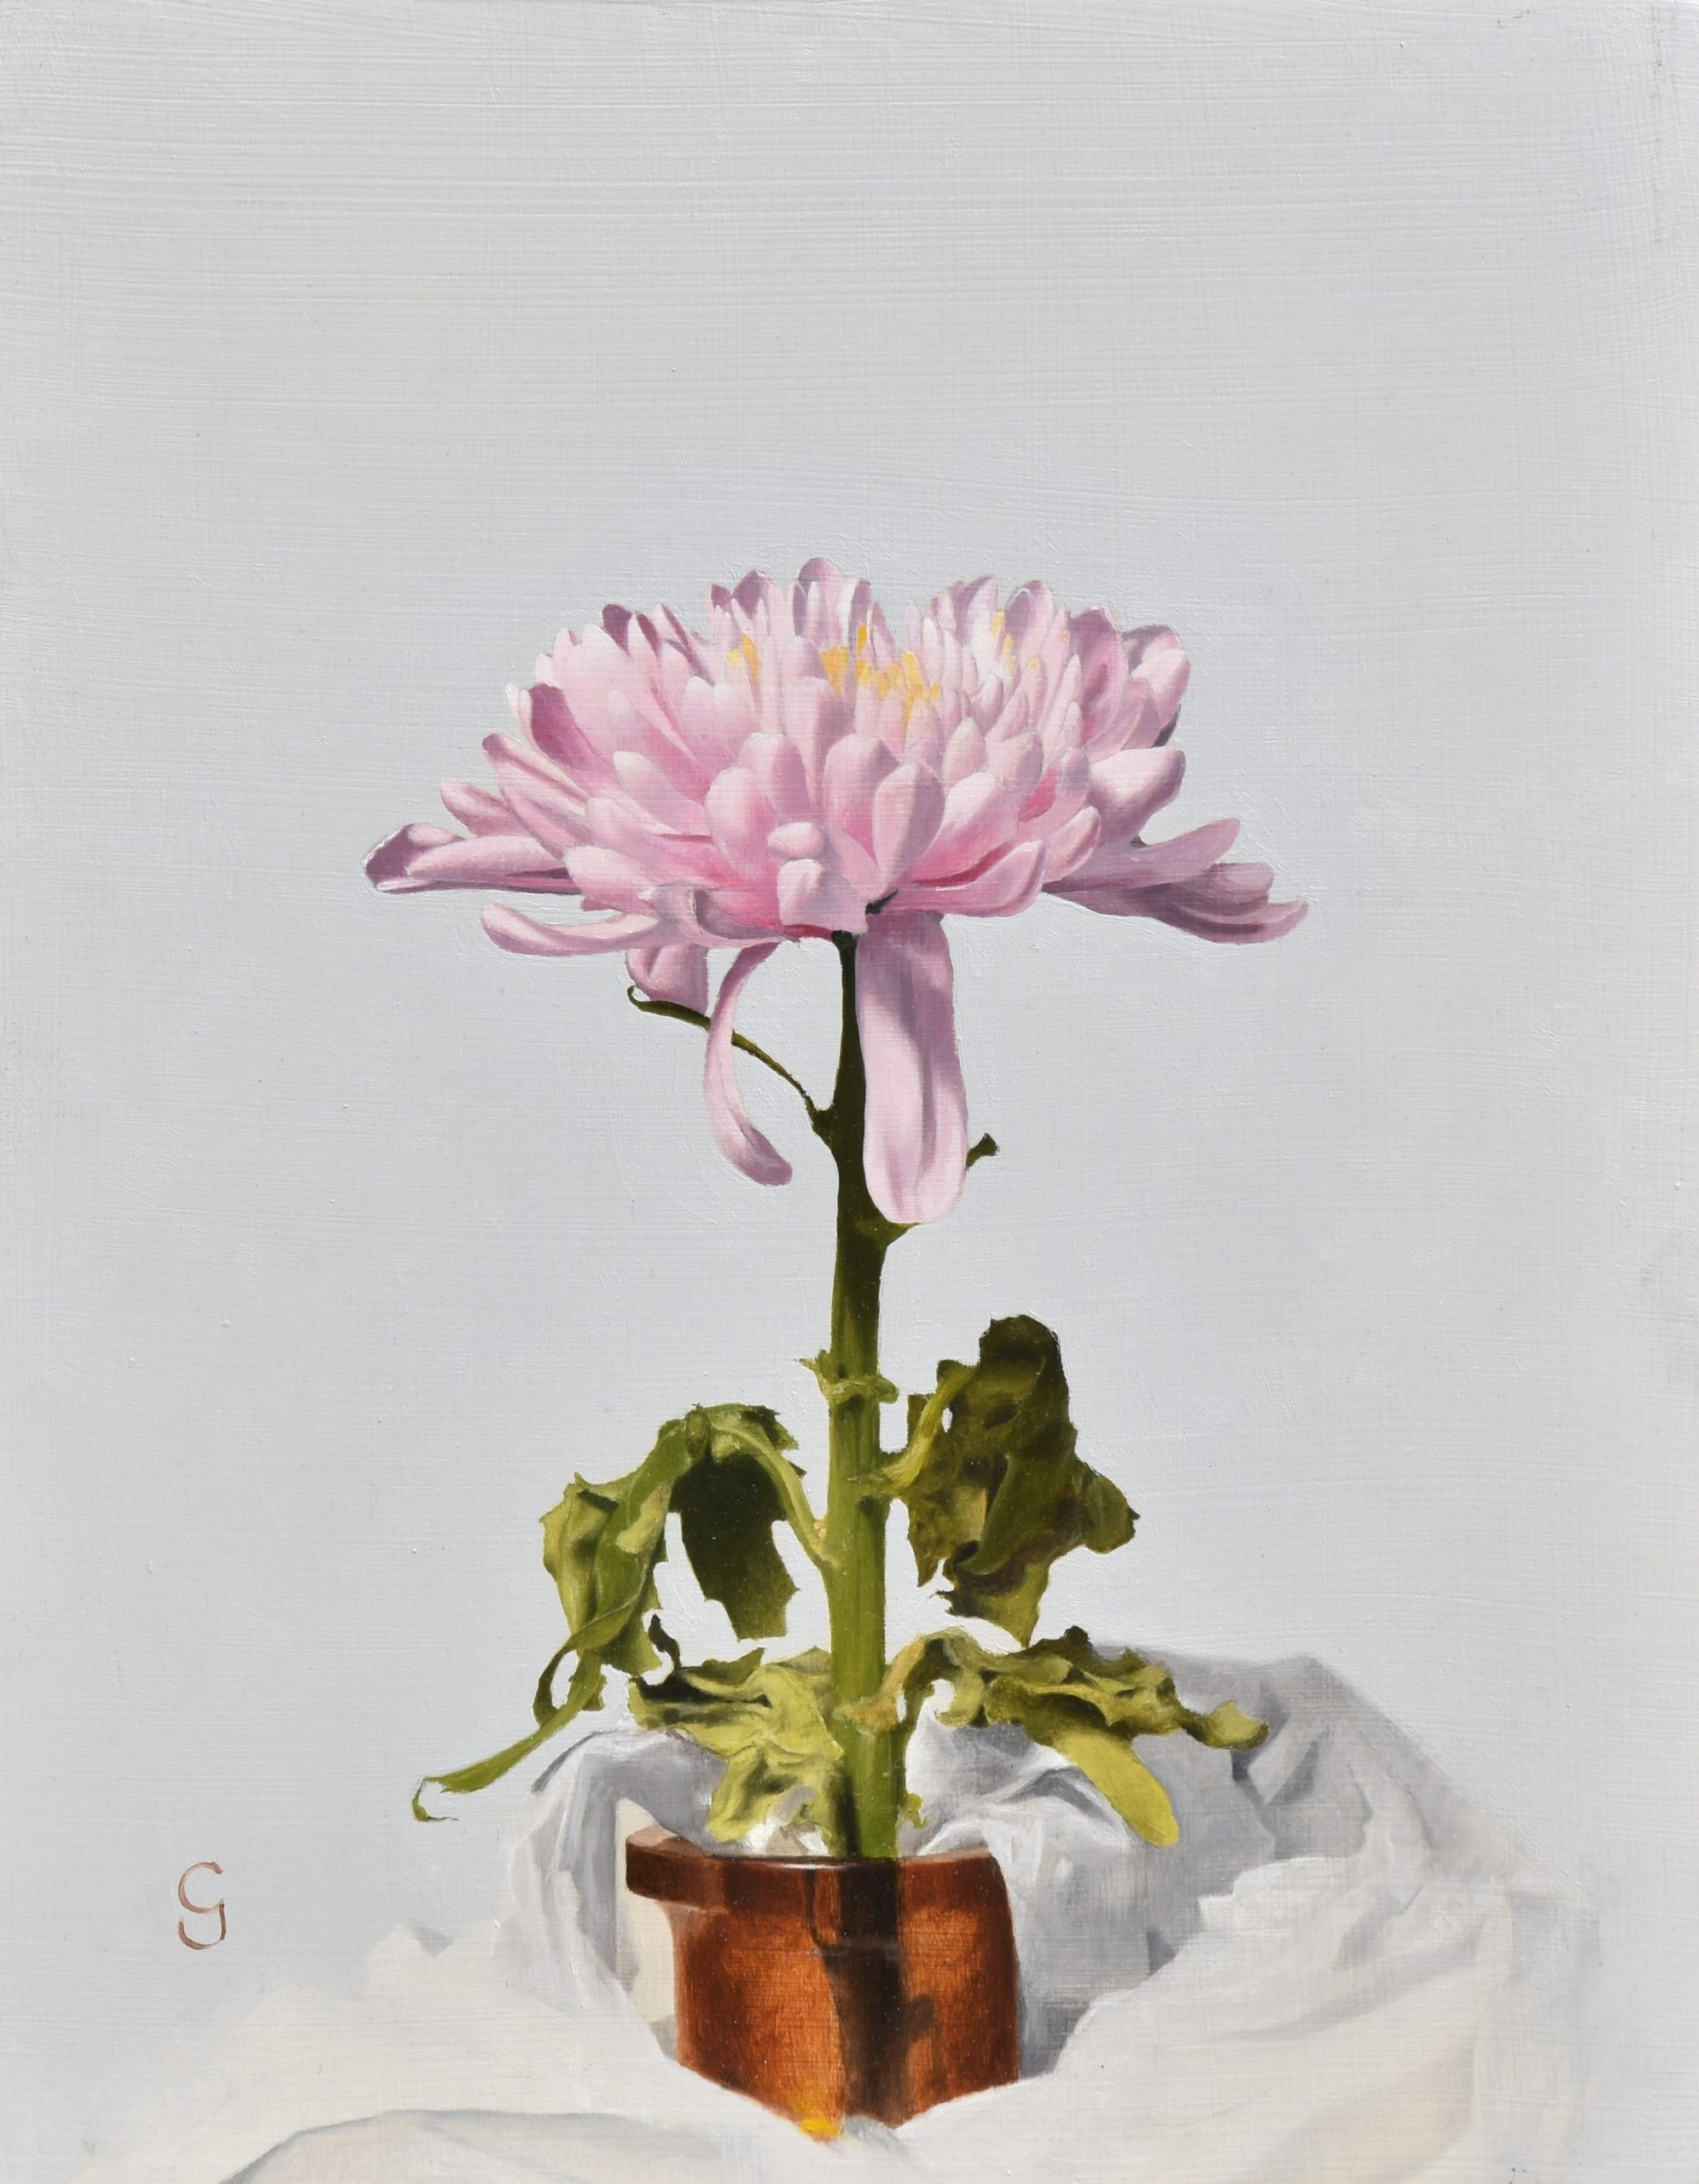 Chrysanthemum, 14″ x 11″, Oil on Panel